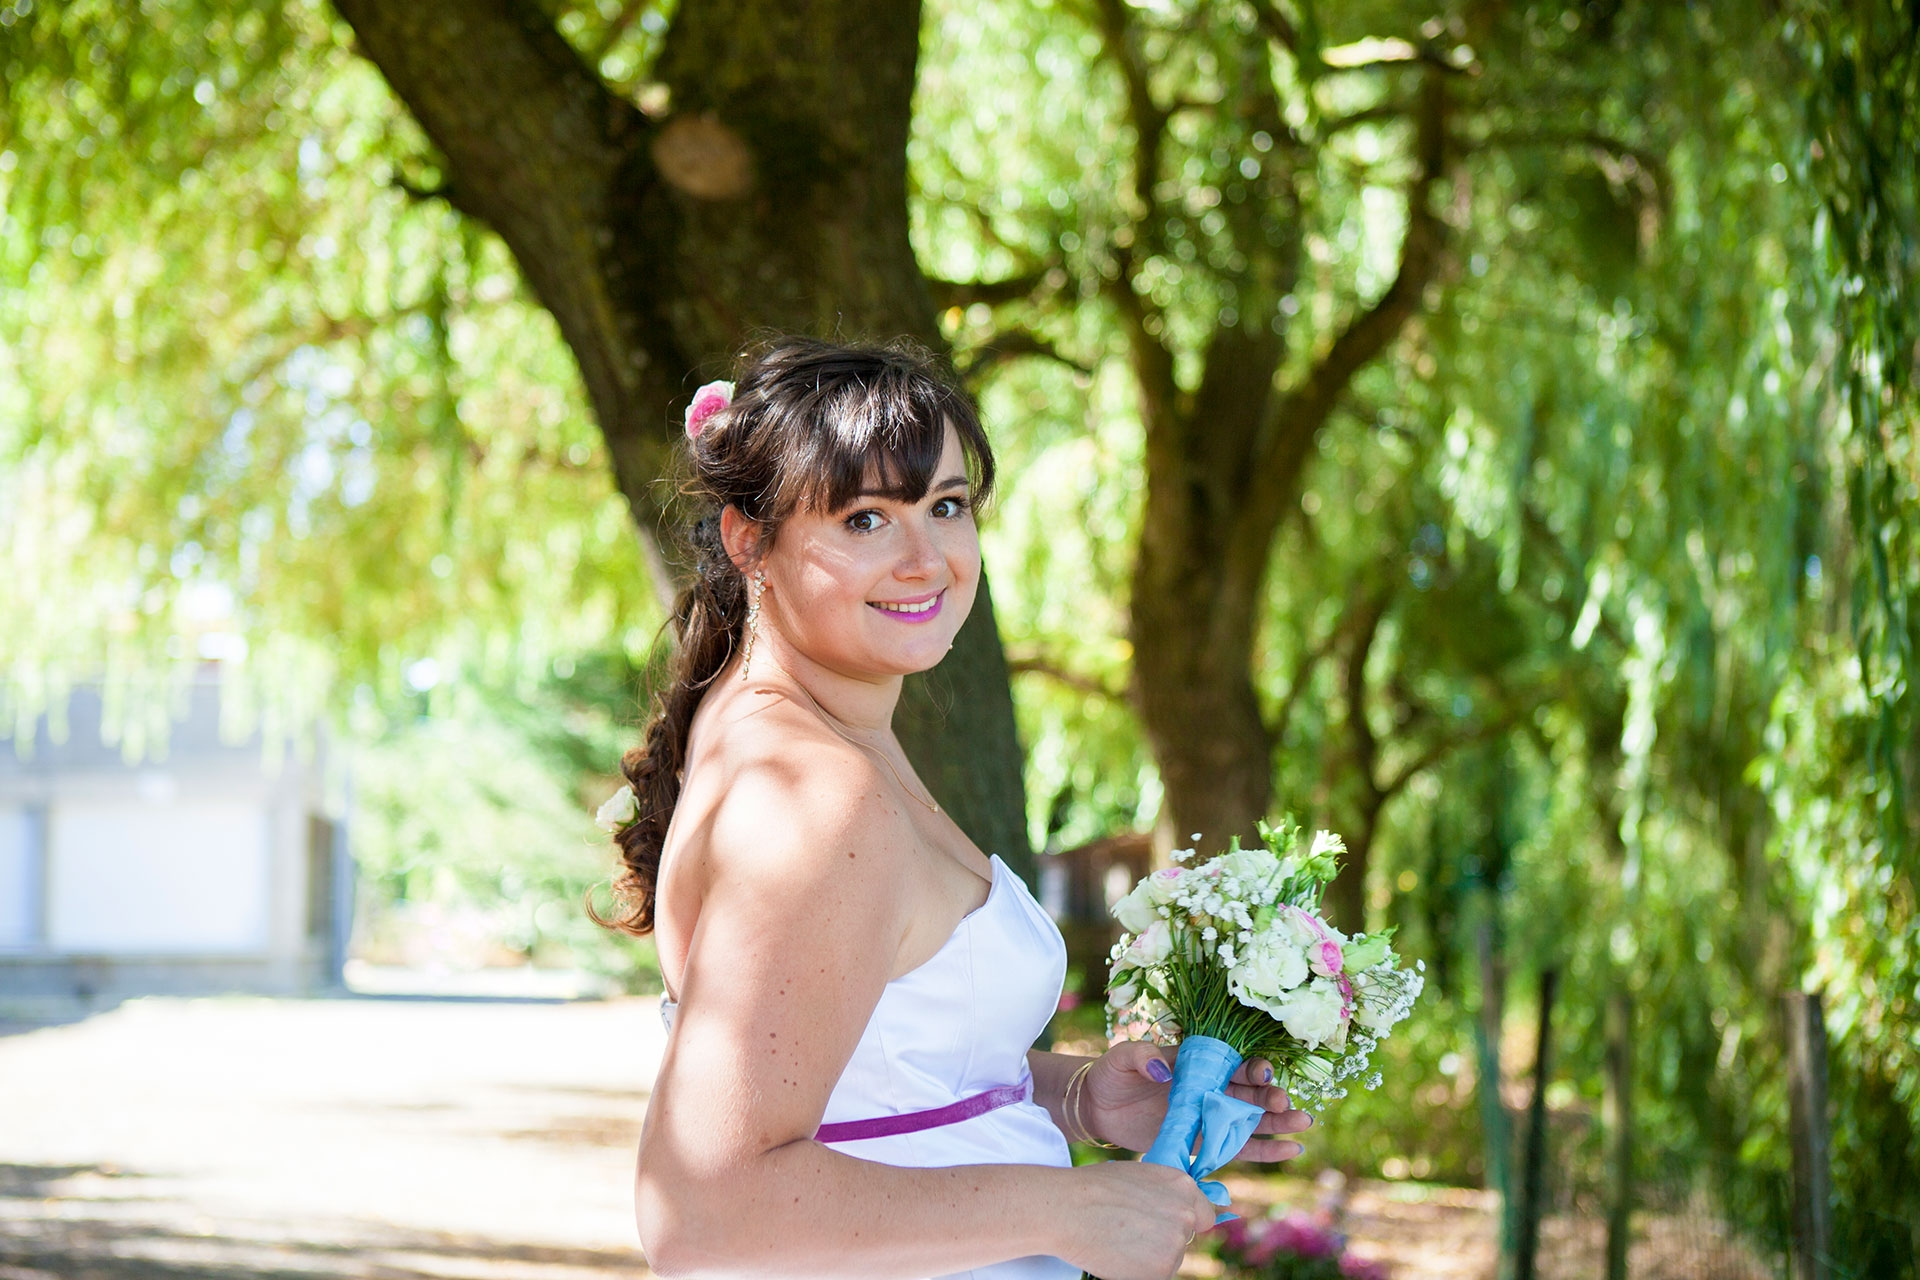 particuliers-evenements-mariages-oui-france&philippe-32